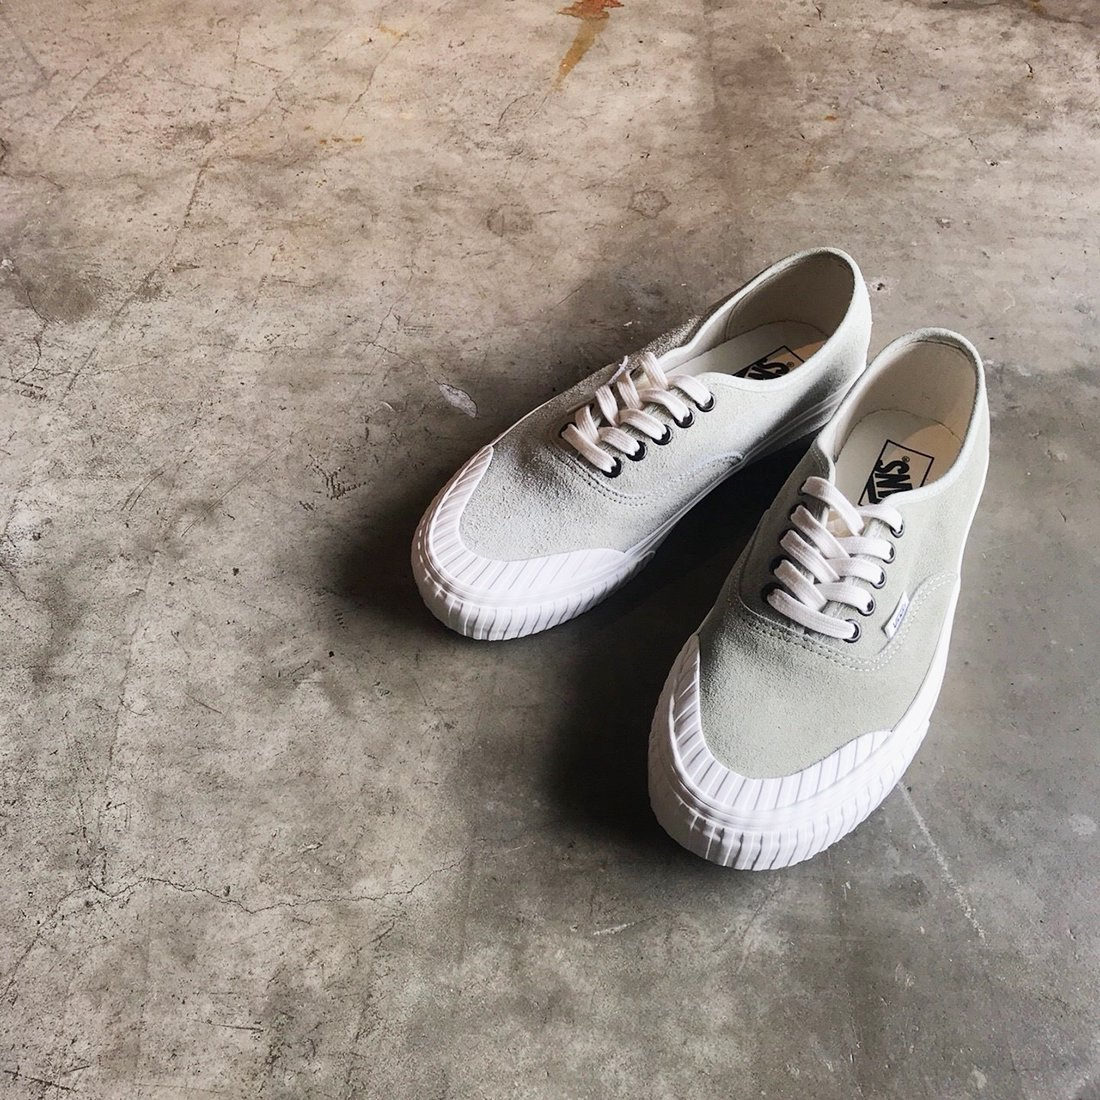 VANS #AUTHENTIC 138 -Vintage Military/Desert Sage